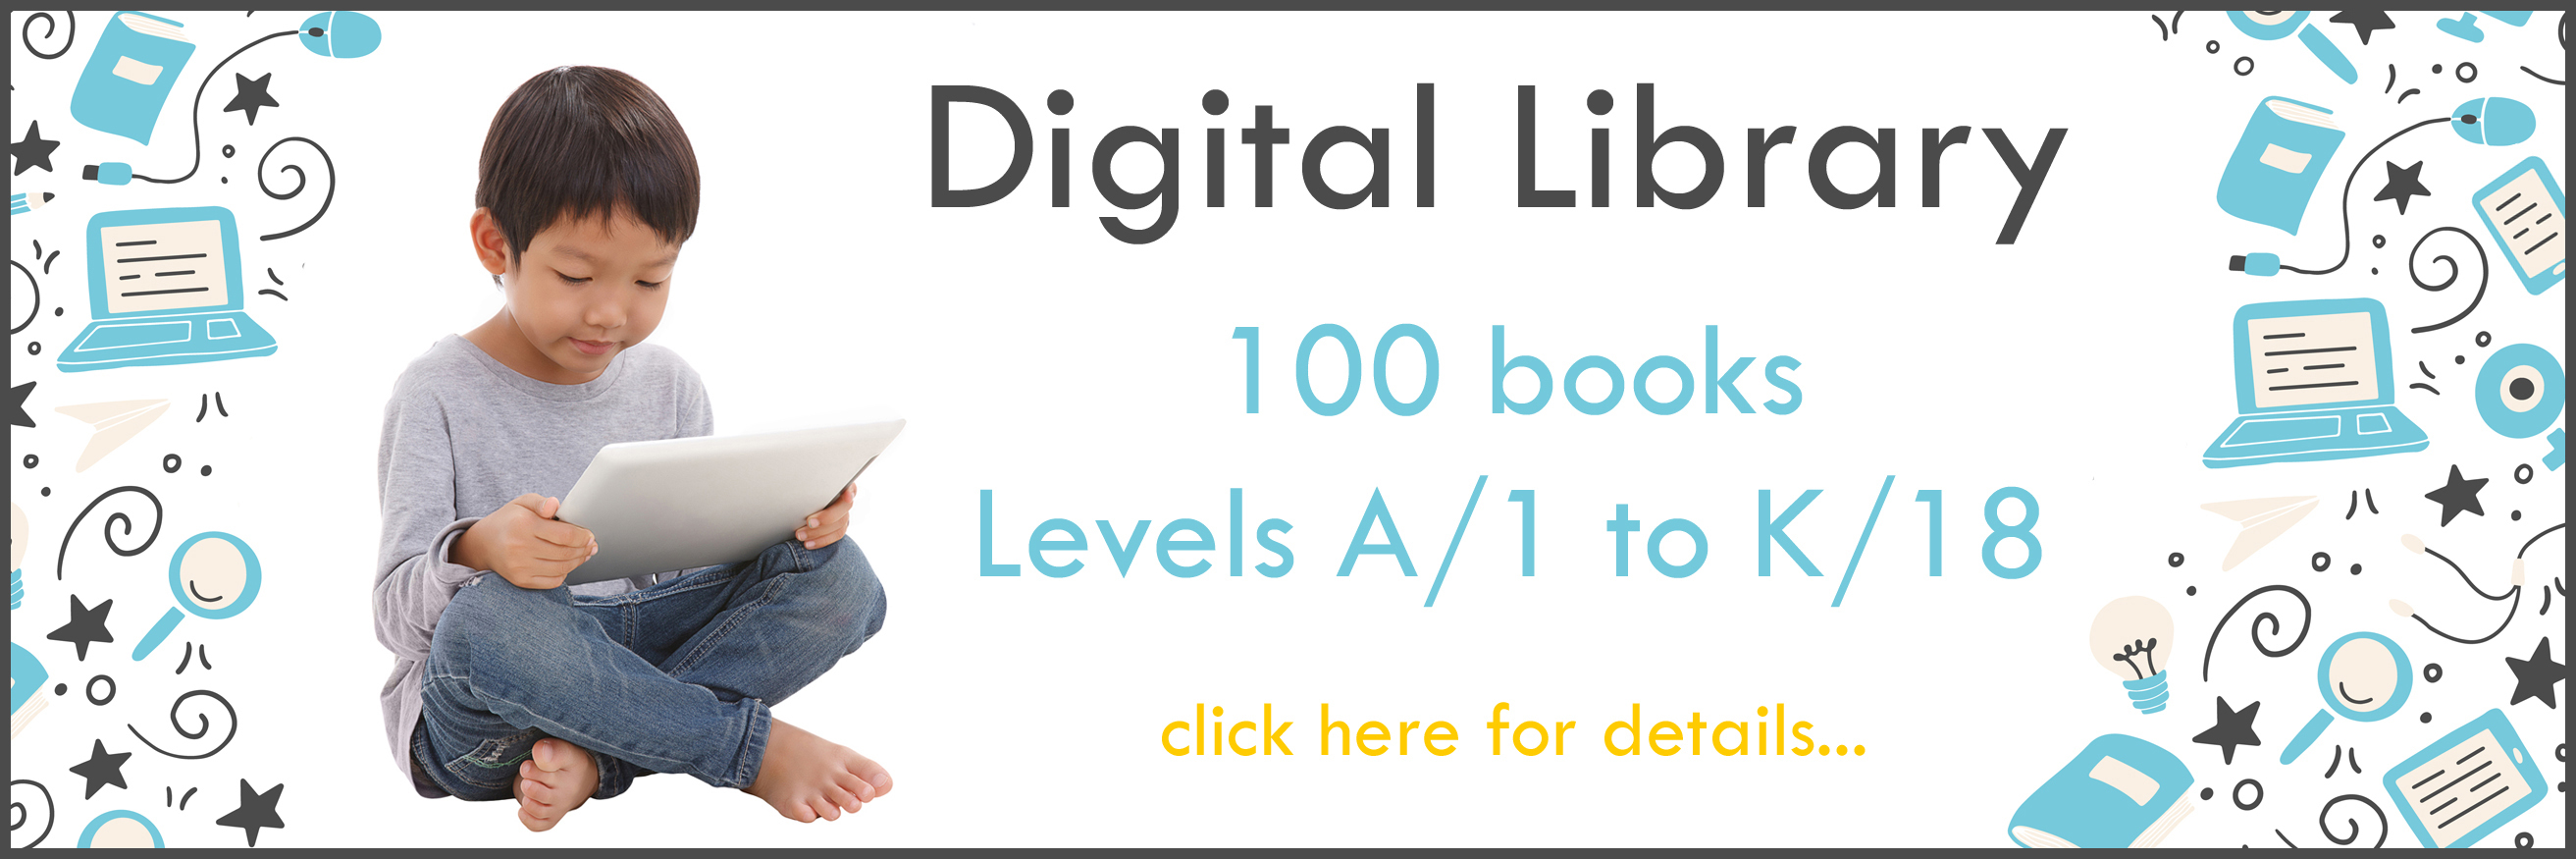 Digital Library 100 books Levels A/1 to K/8 click here for details